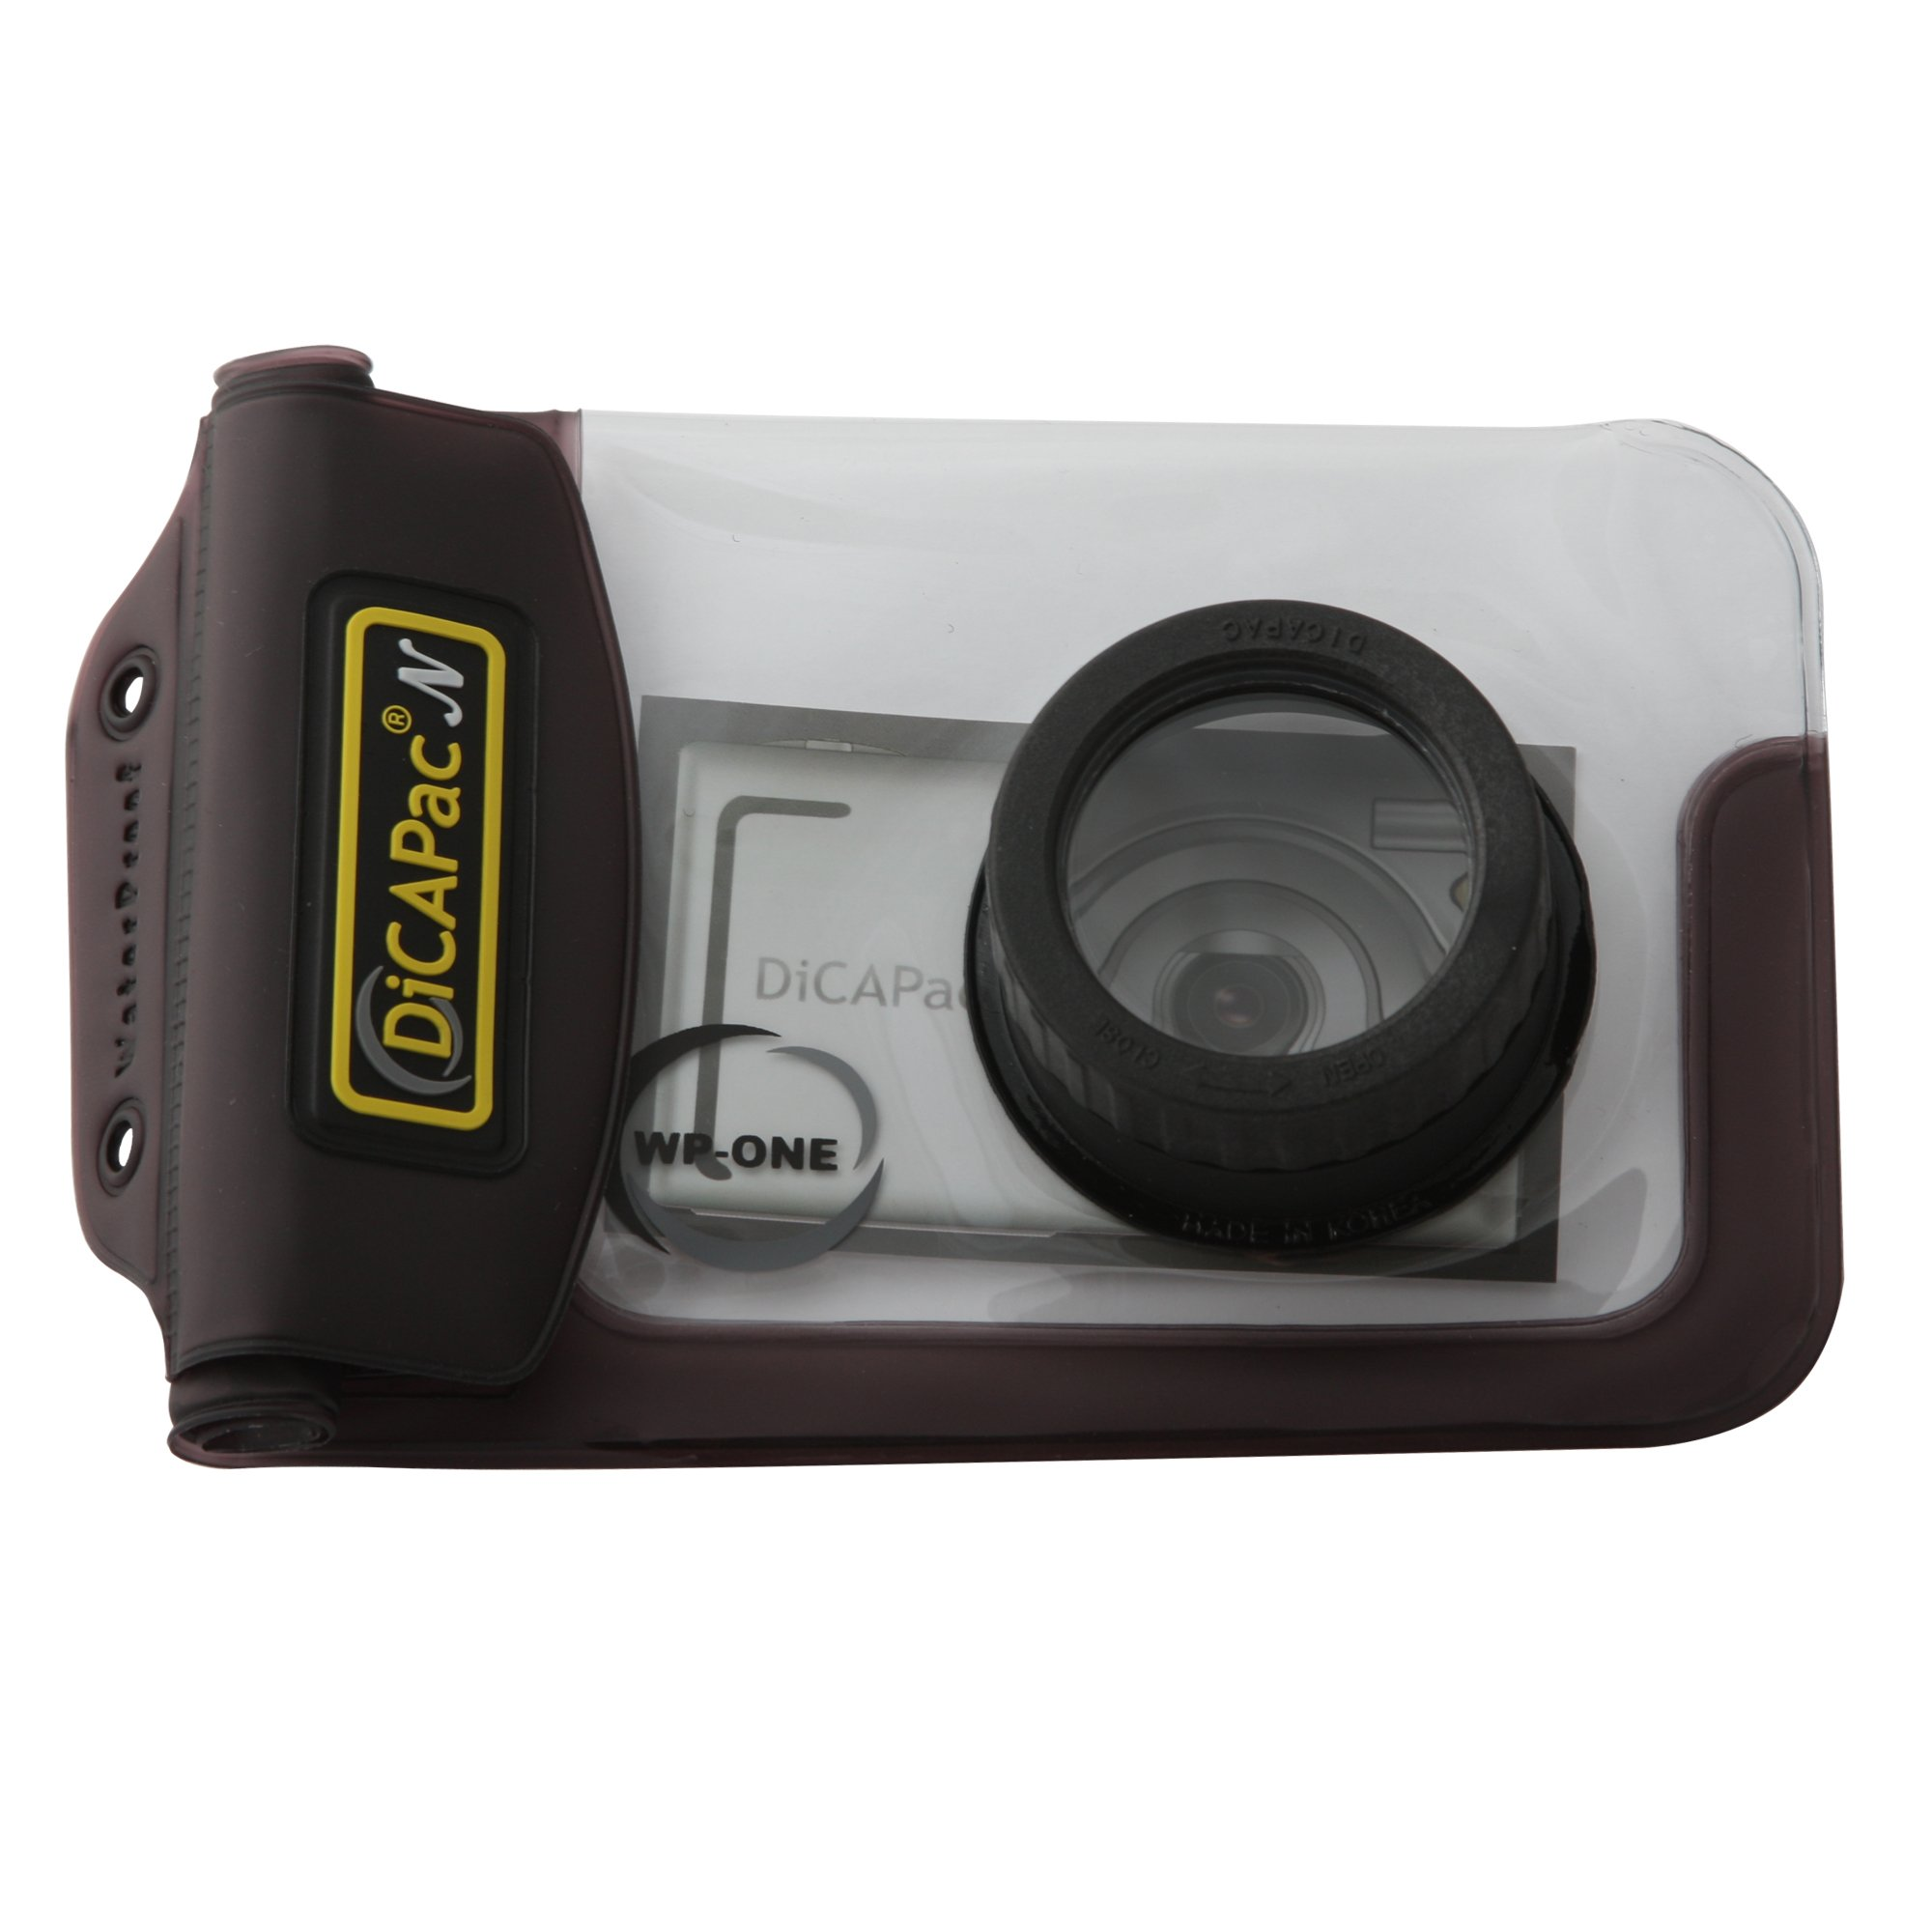 Dicapac WP-ONE Point & Shoot Digital Camera Waterproof Case by Dicapac USA Inc.